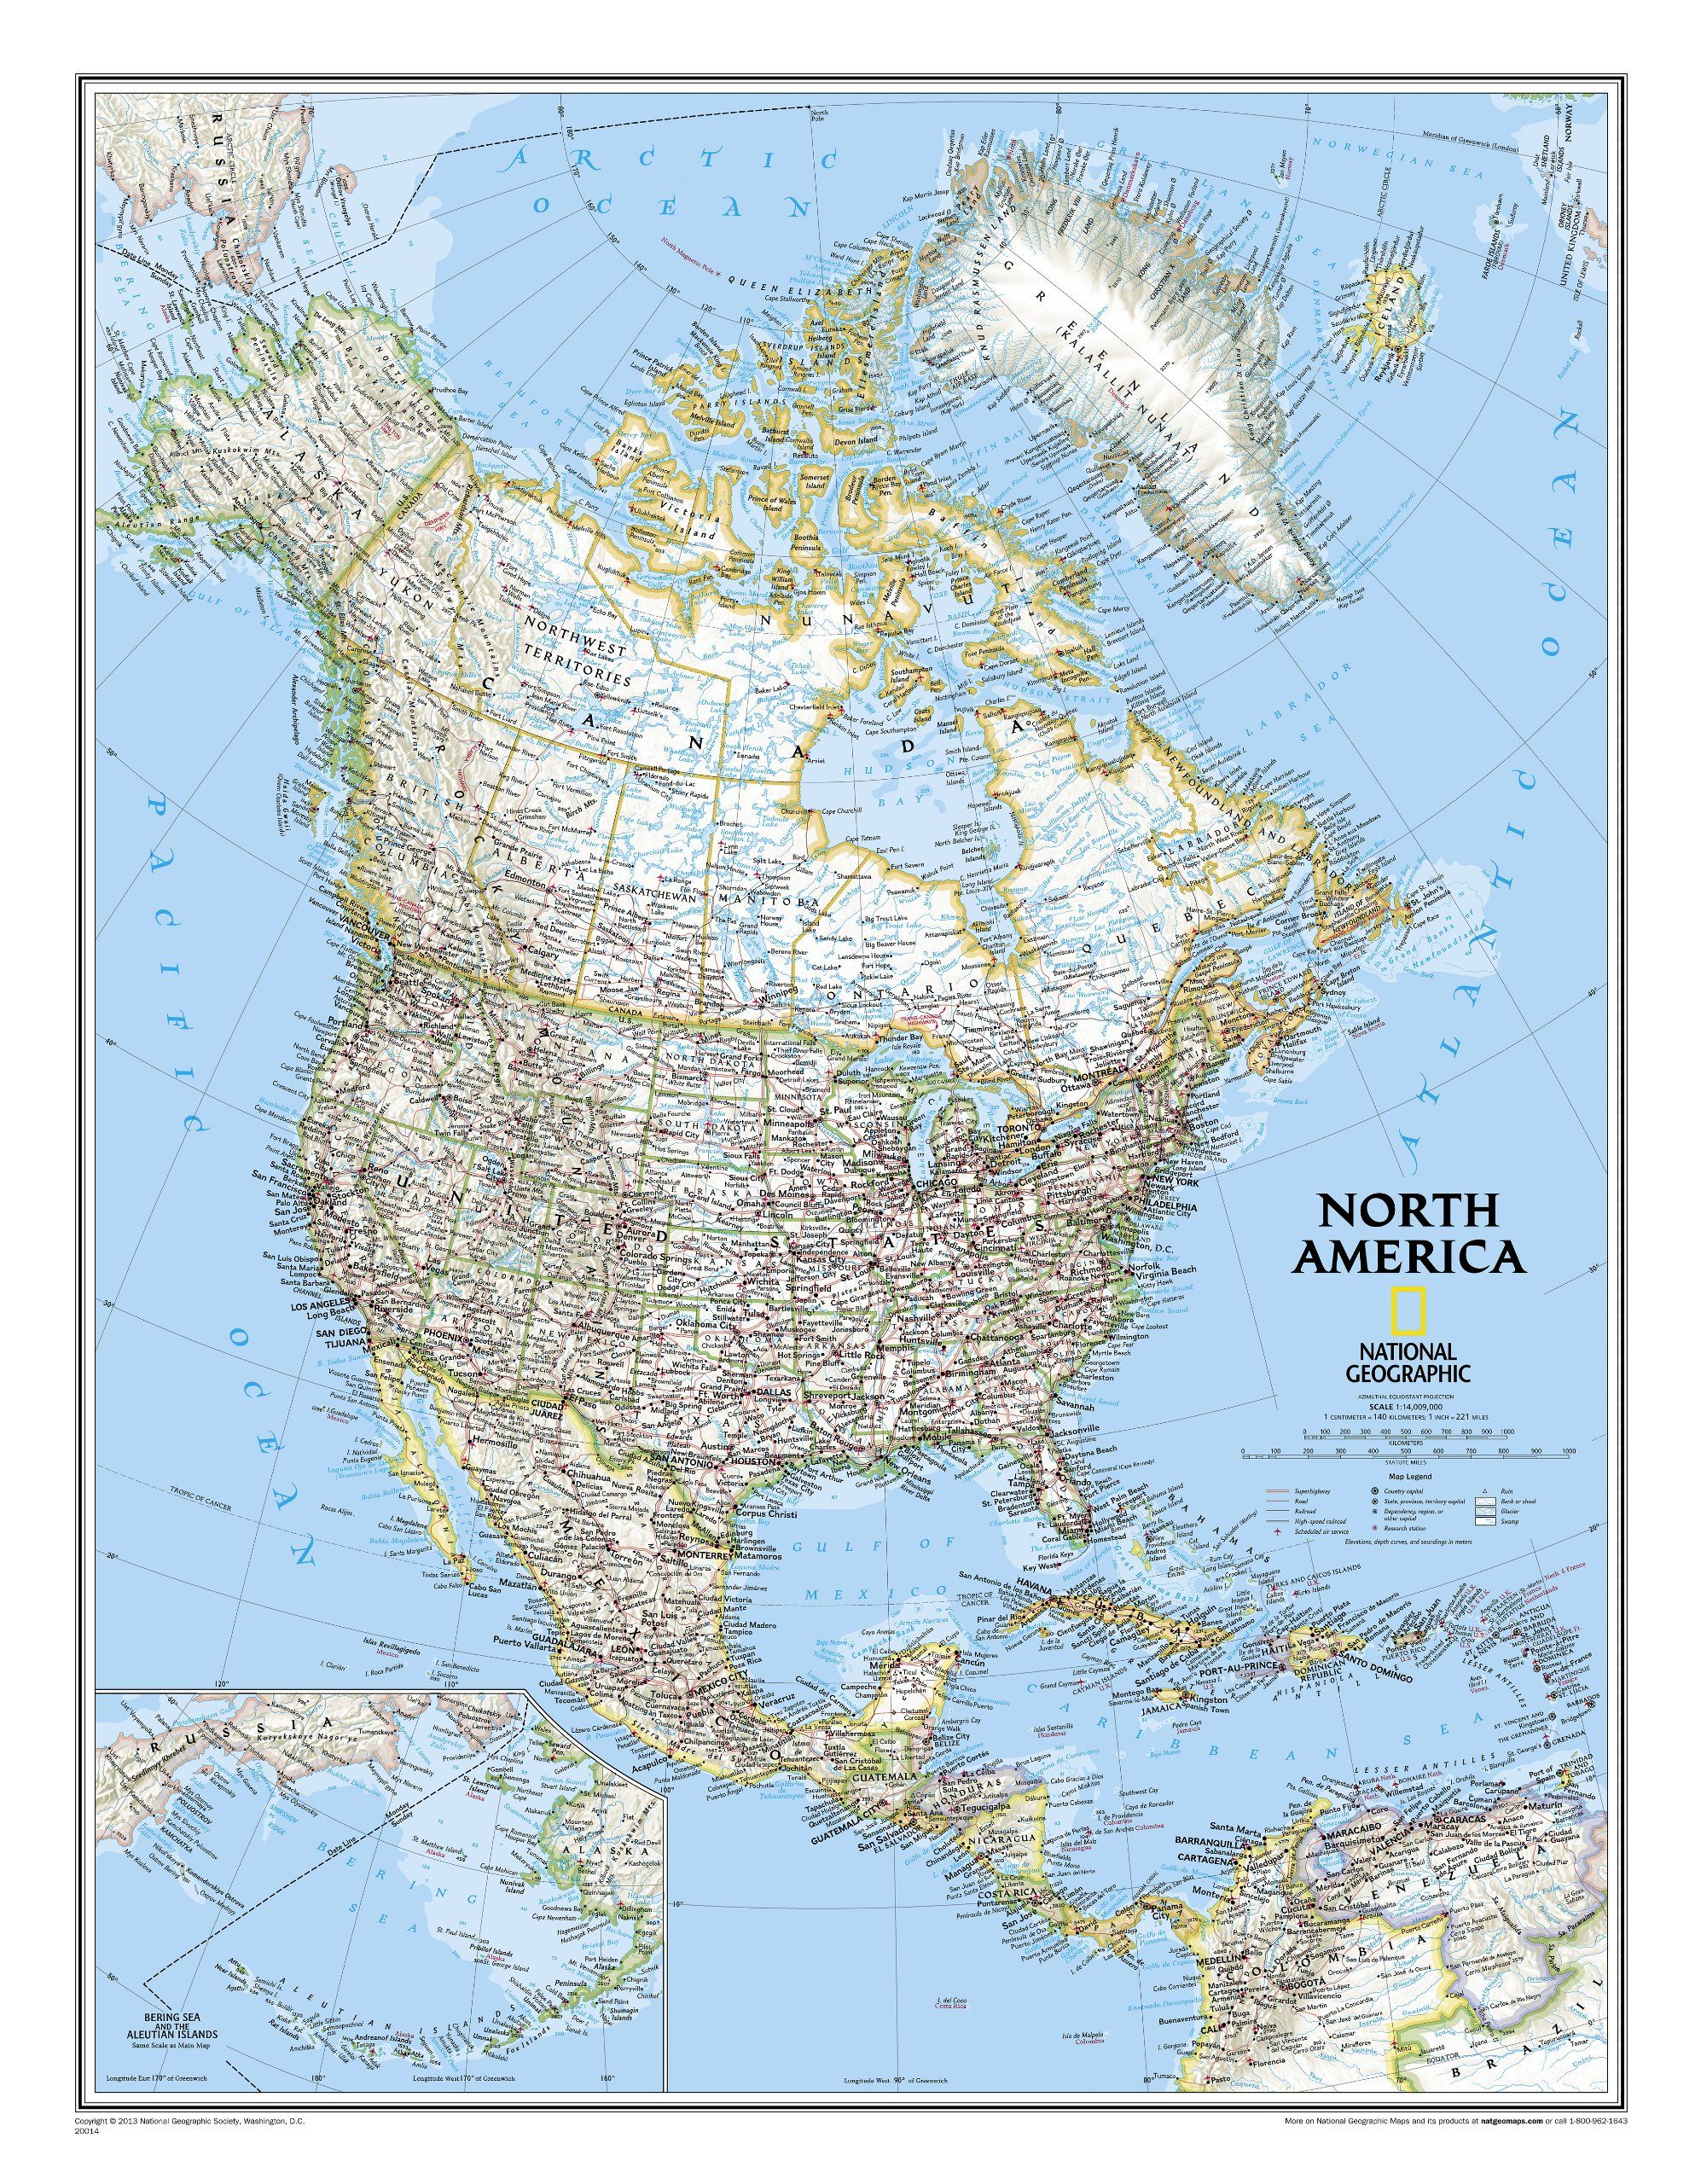 North america classic tubed national geographic reference map north america classic tubed national geographic reference map national geographic maps gumiabroncs Image collections